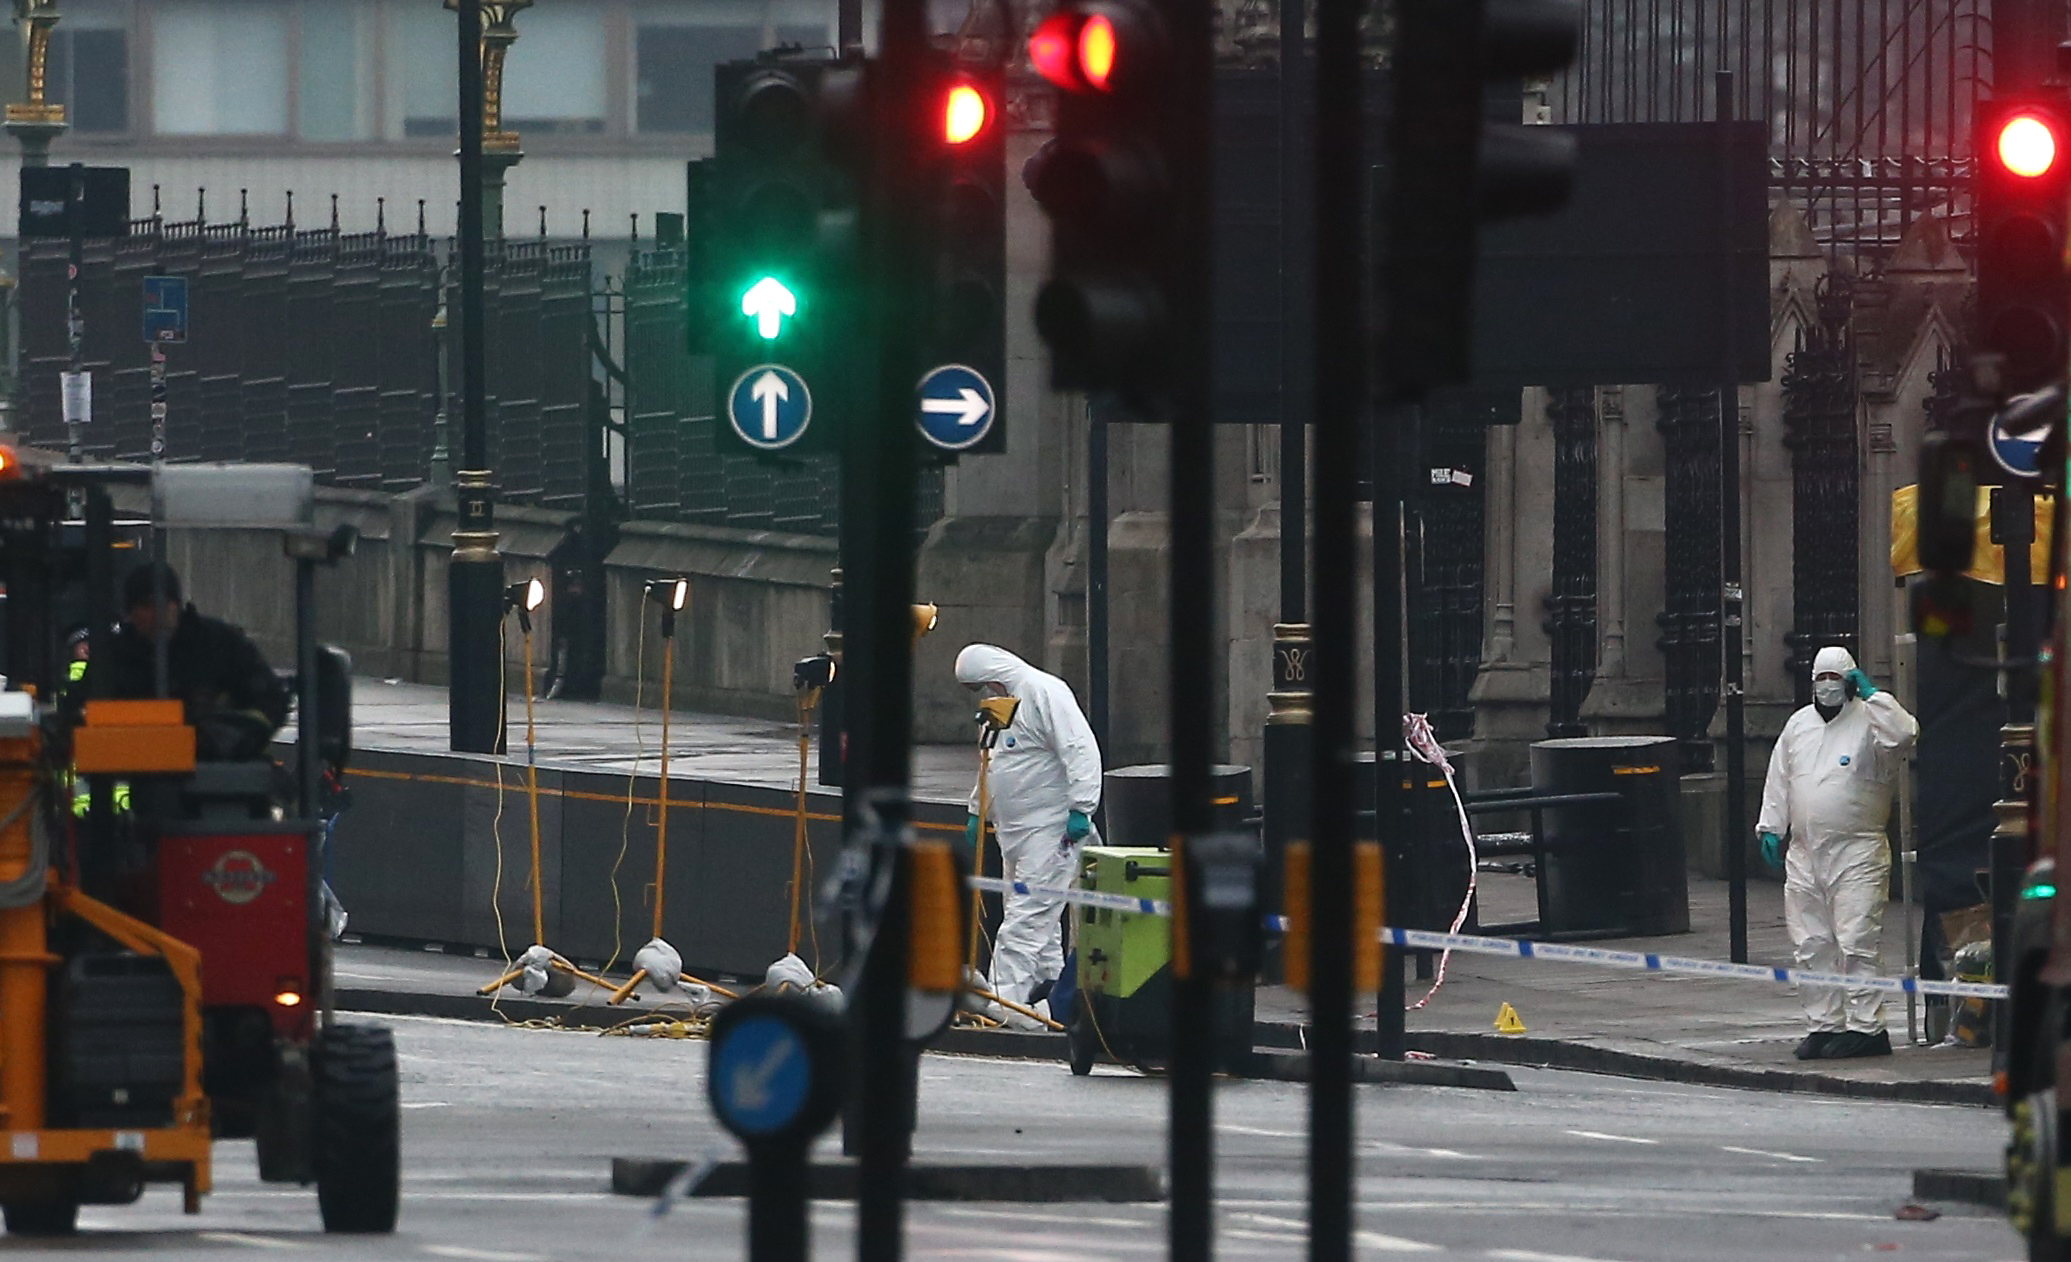 Forensics investigators and police officers work at the site near Westminster Bridge. (REUTERS/Neil Hall)